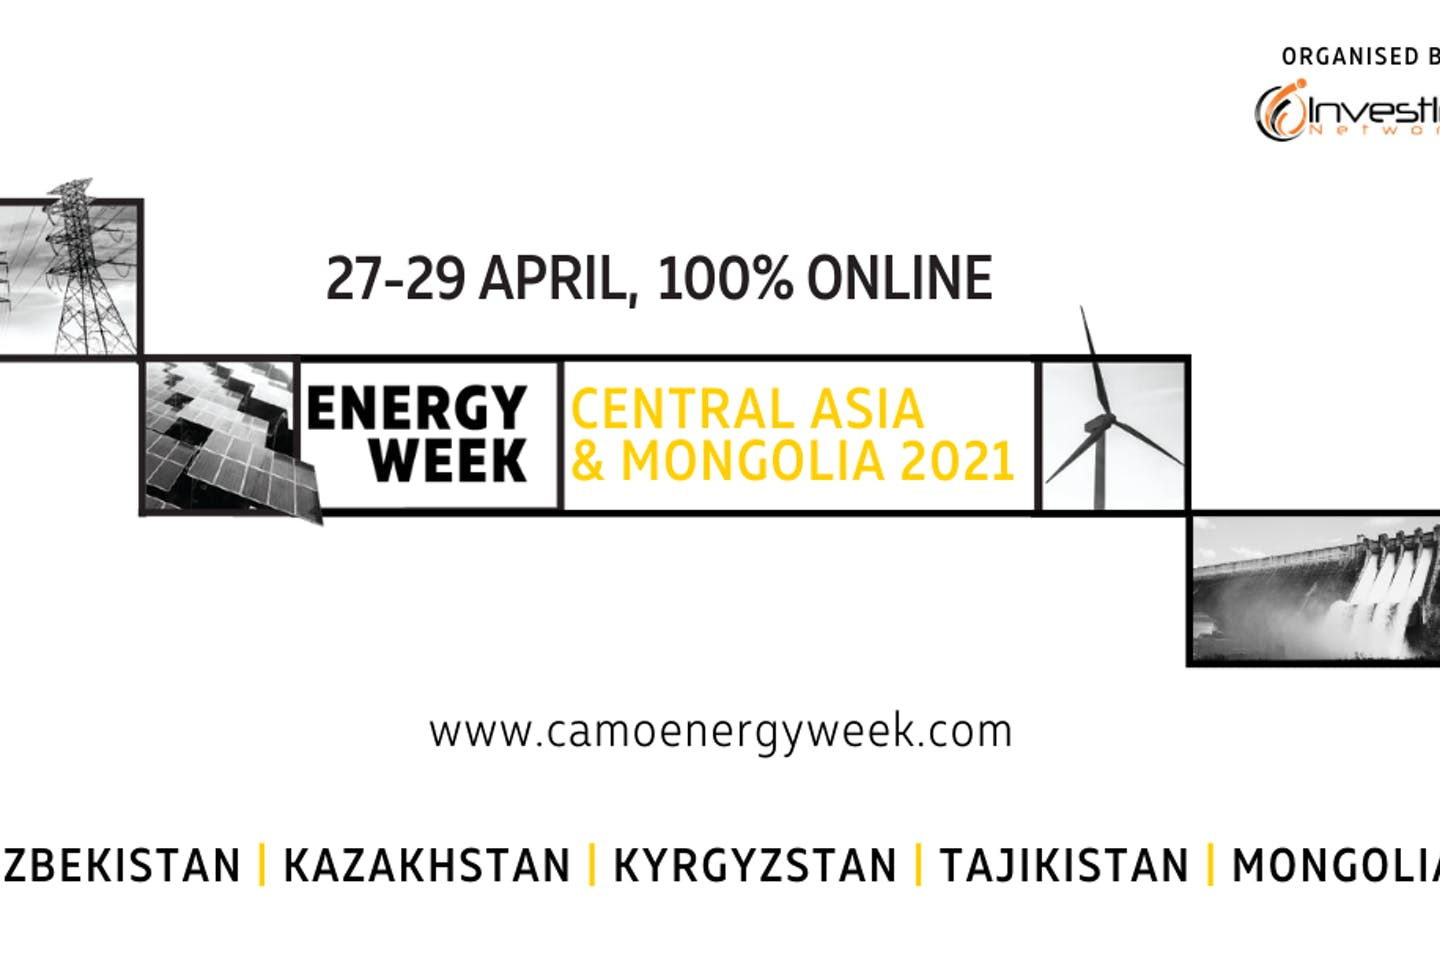 Energy Week Central Asia & Mongolia